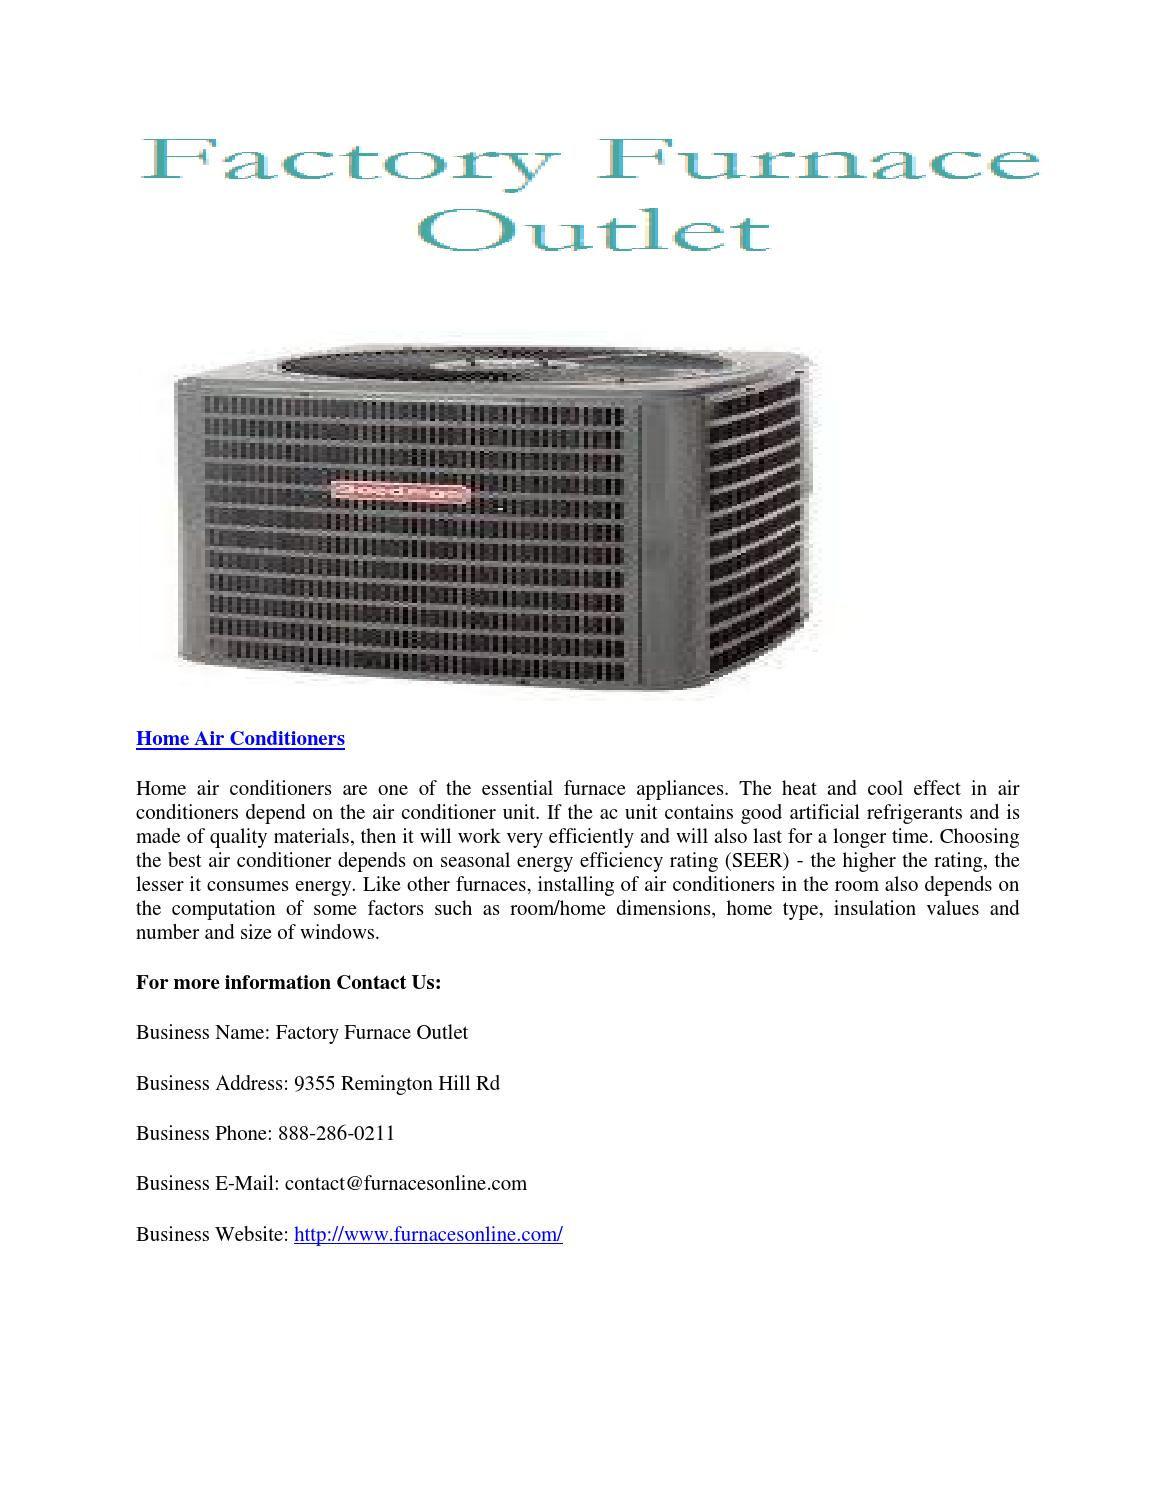 #2B2DA0 Home Air Conditioners By Andru Pitar Issuu Most Effective 12405 Household Air Conditioners pictures with 1156x1496 px on helpvideos.info - Air Conditioners, Air Coolers and more